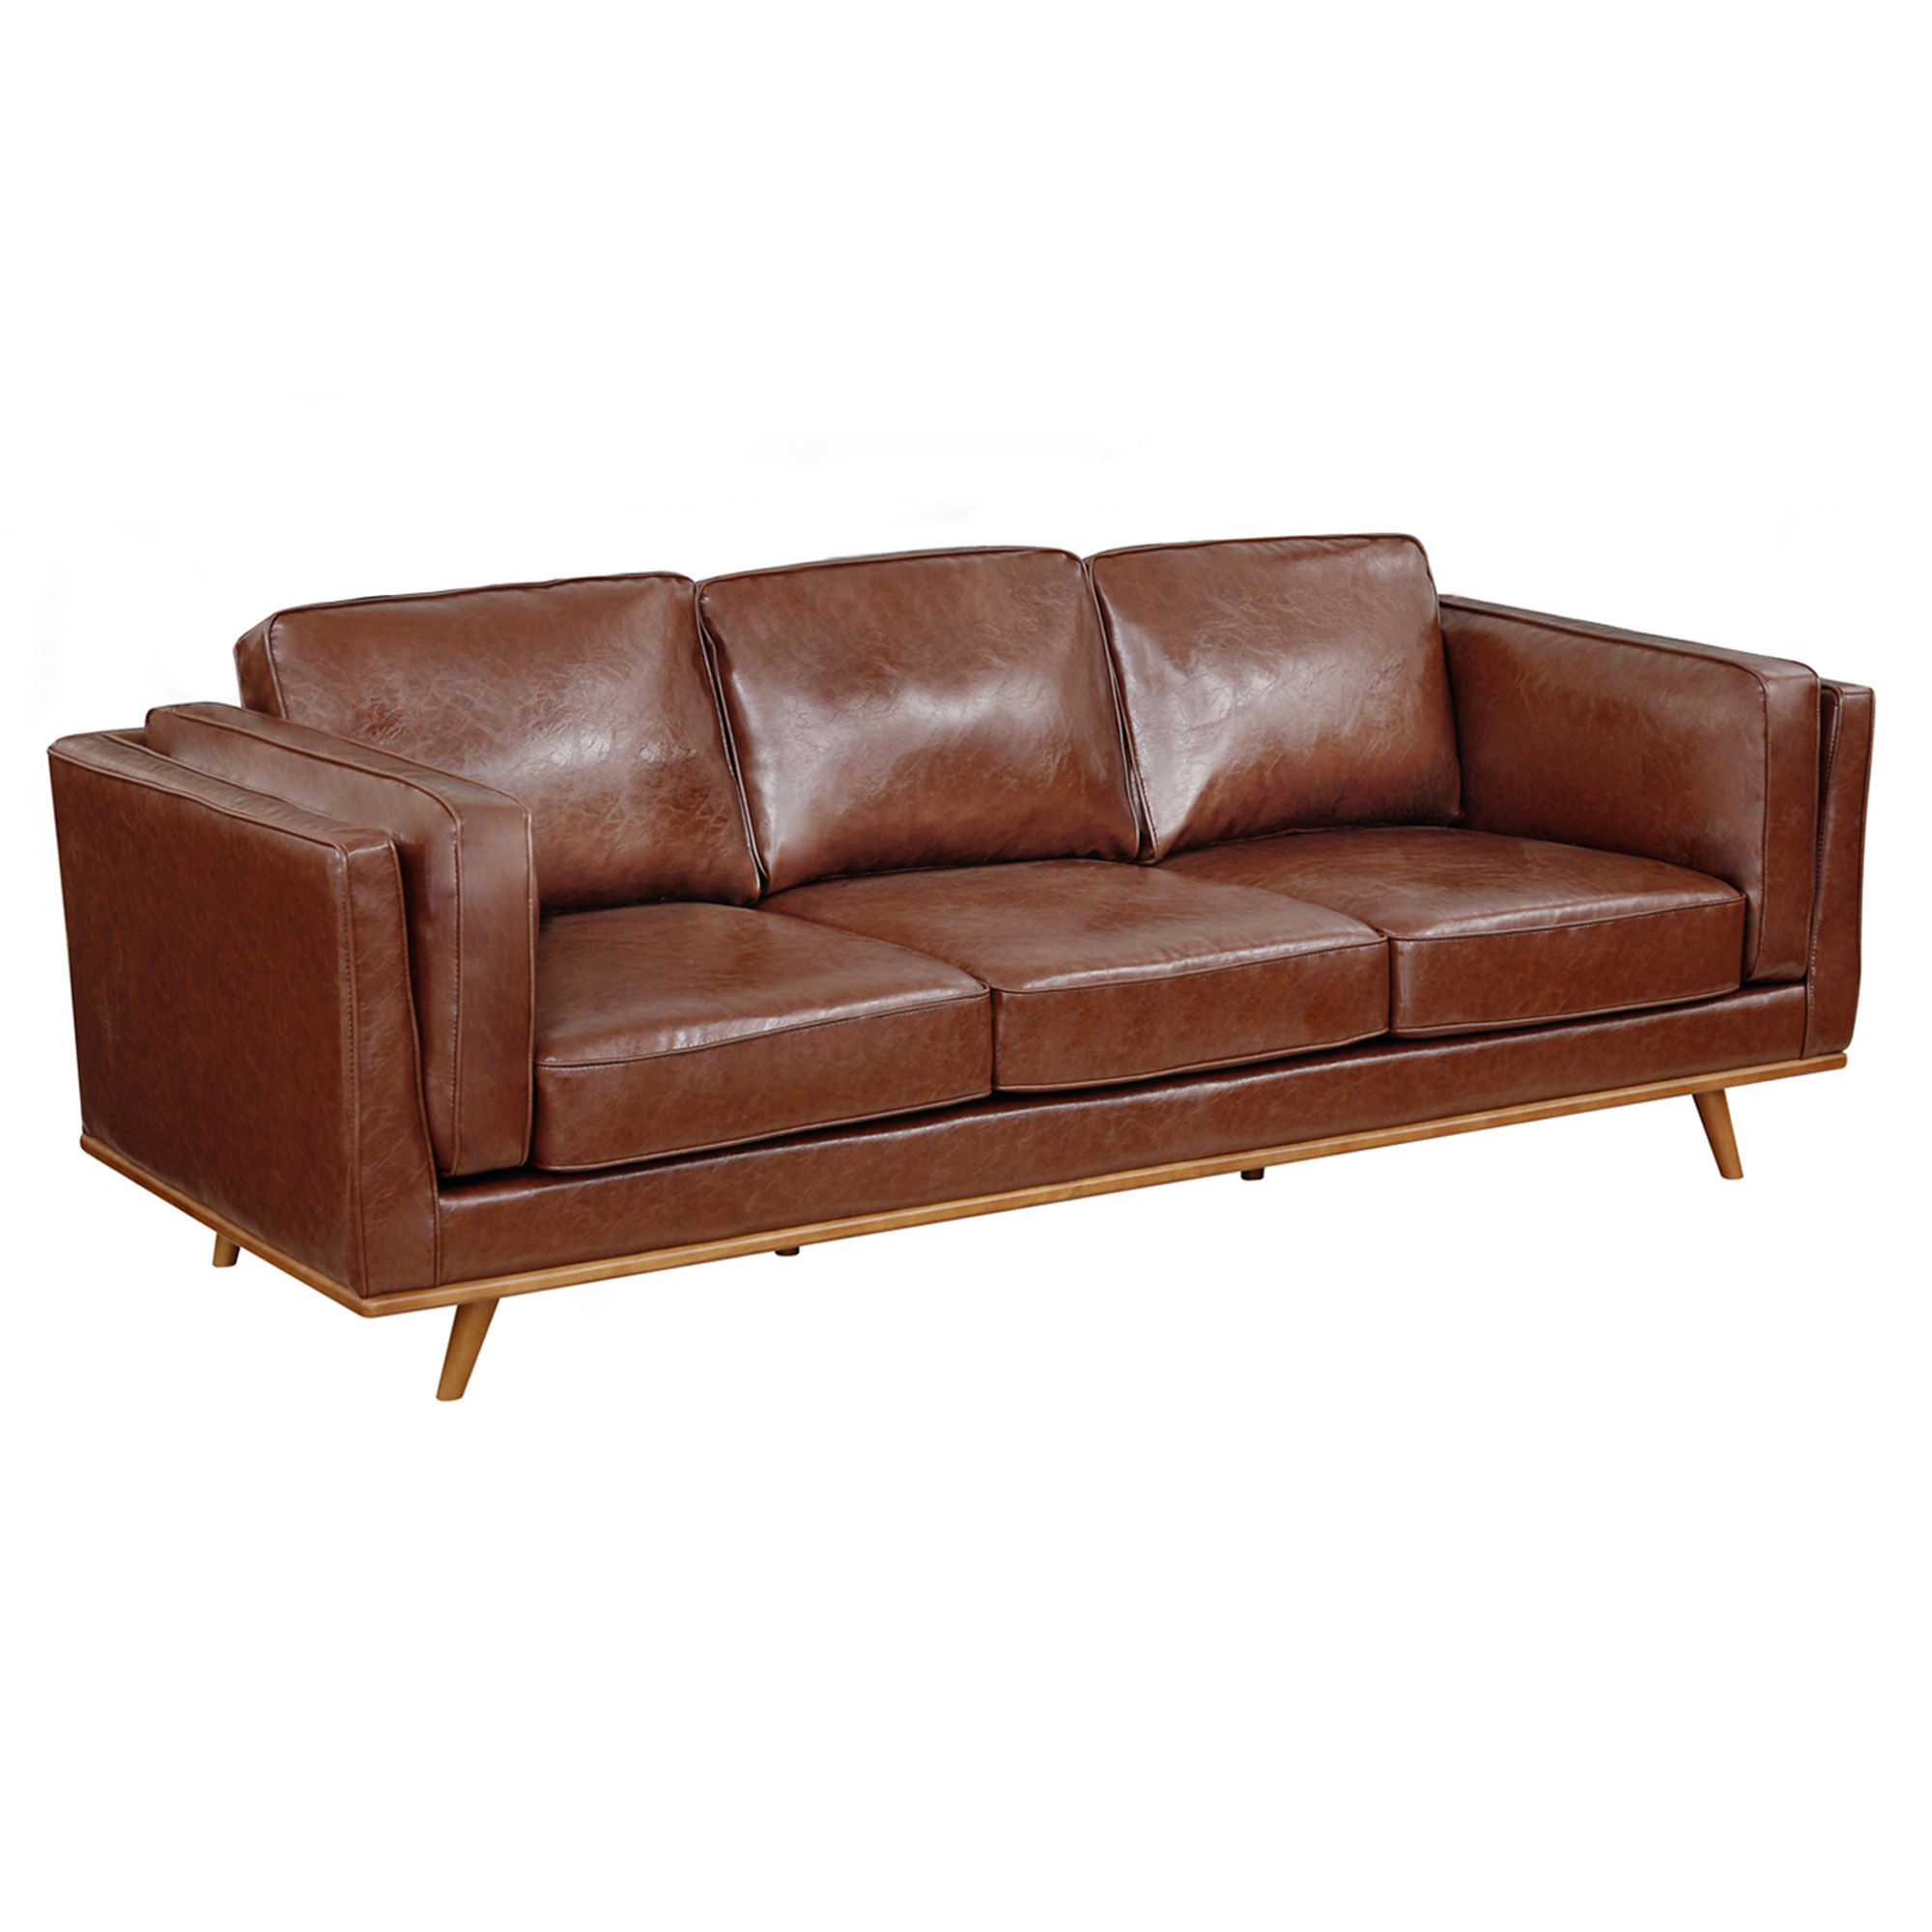 Southern Stylers Brown Brooklyn Faux Leather 3 Seater Sofa Temple Webster